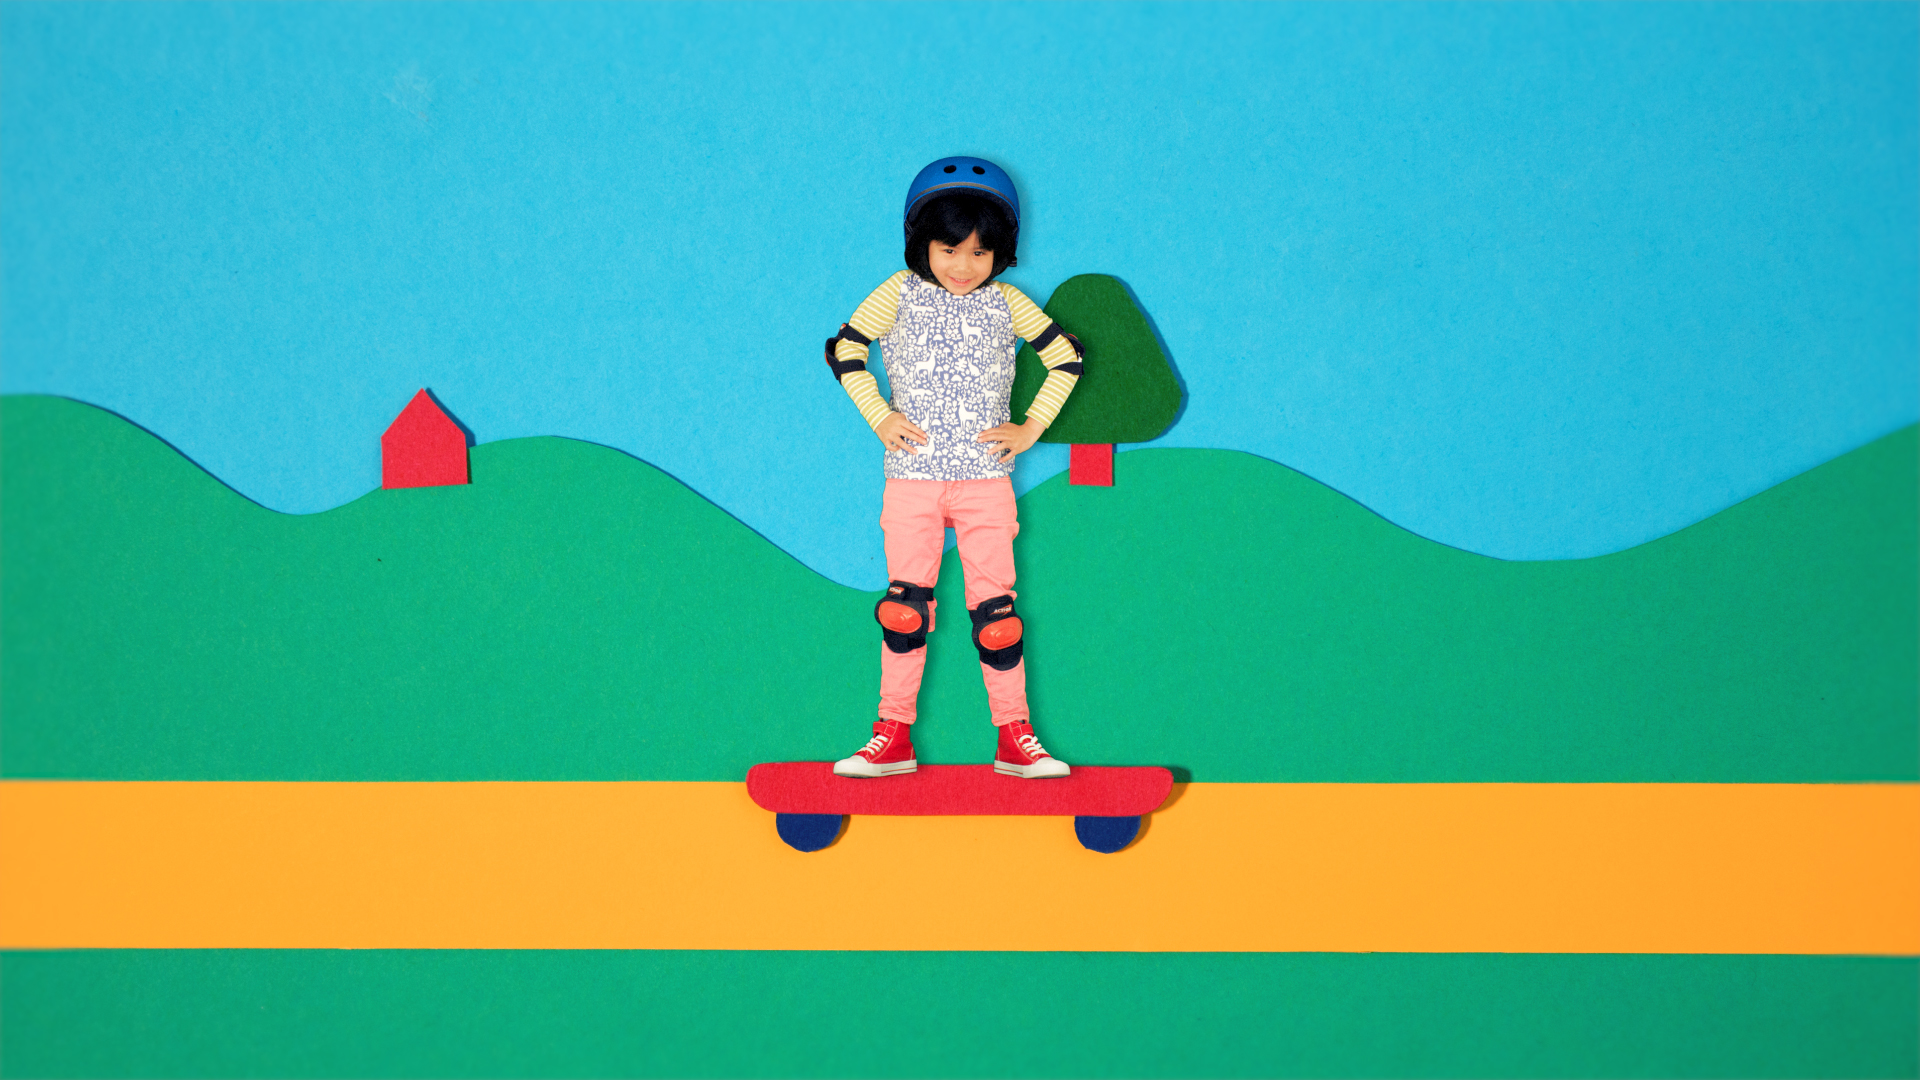 SKATEBOARD - cbeebies, stop motion for kit and pup---young-illustration-and-animation,-paper-craft-stop-motion, animated children_00645_00215.jpg